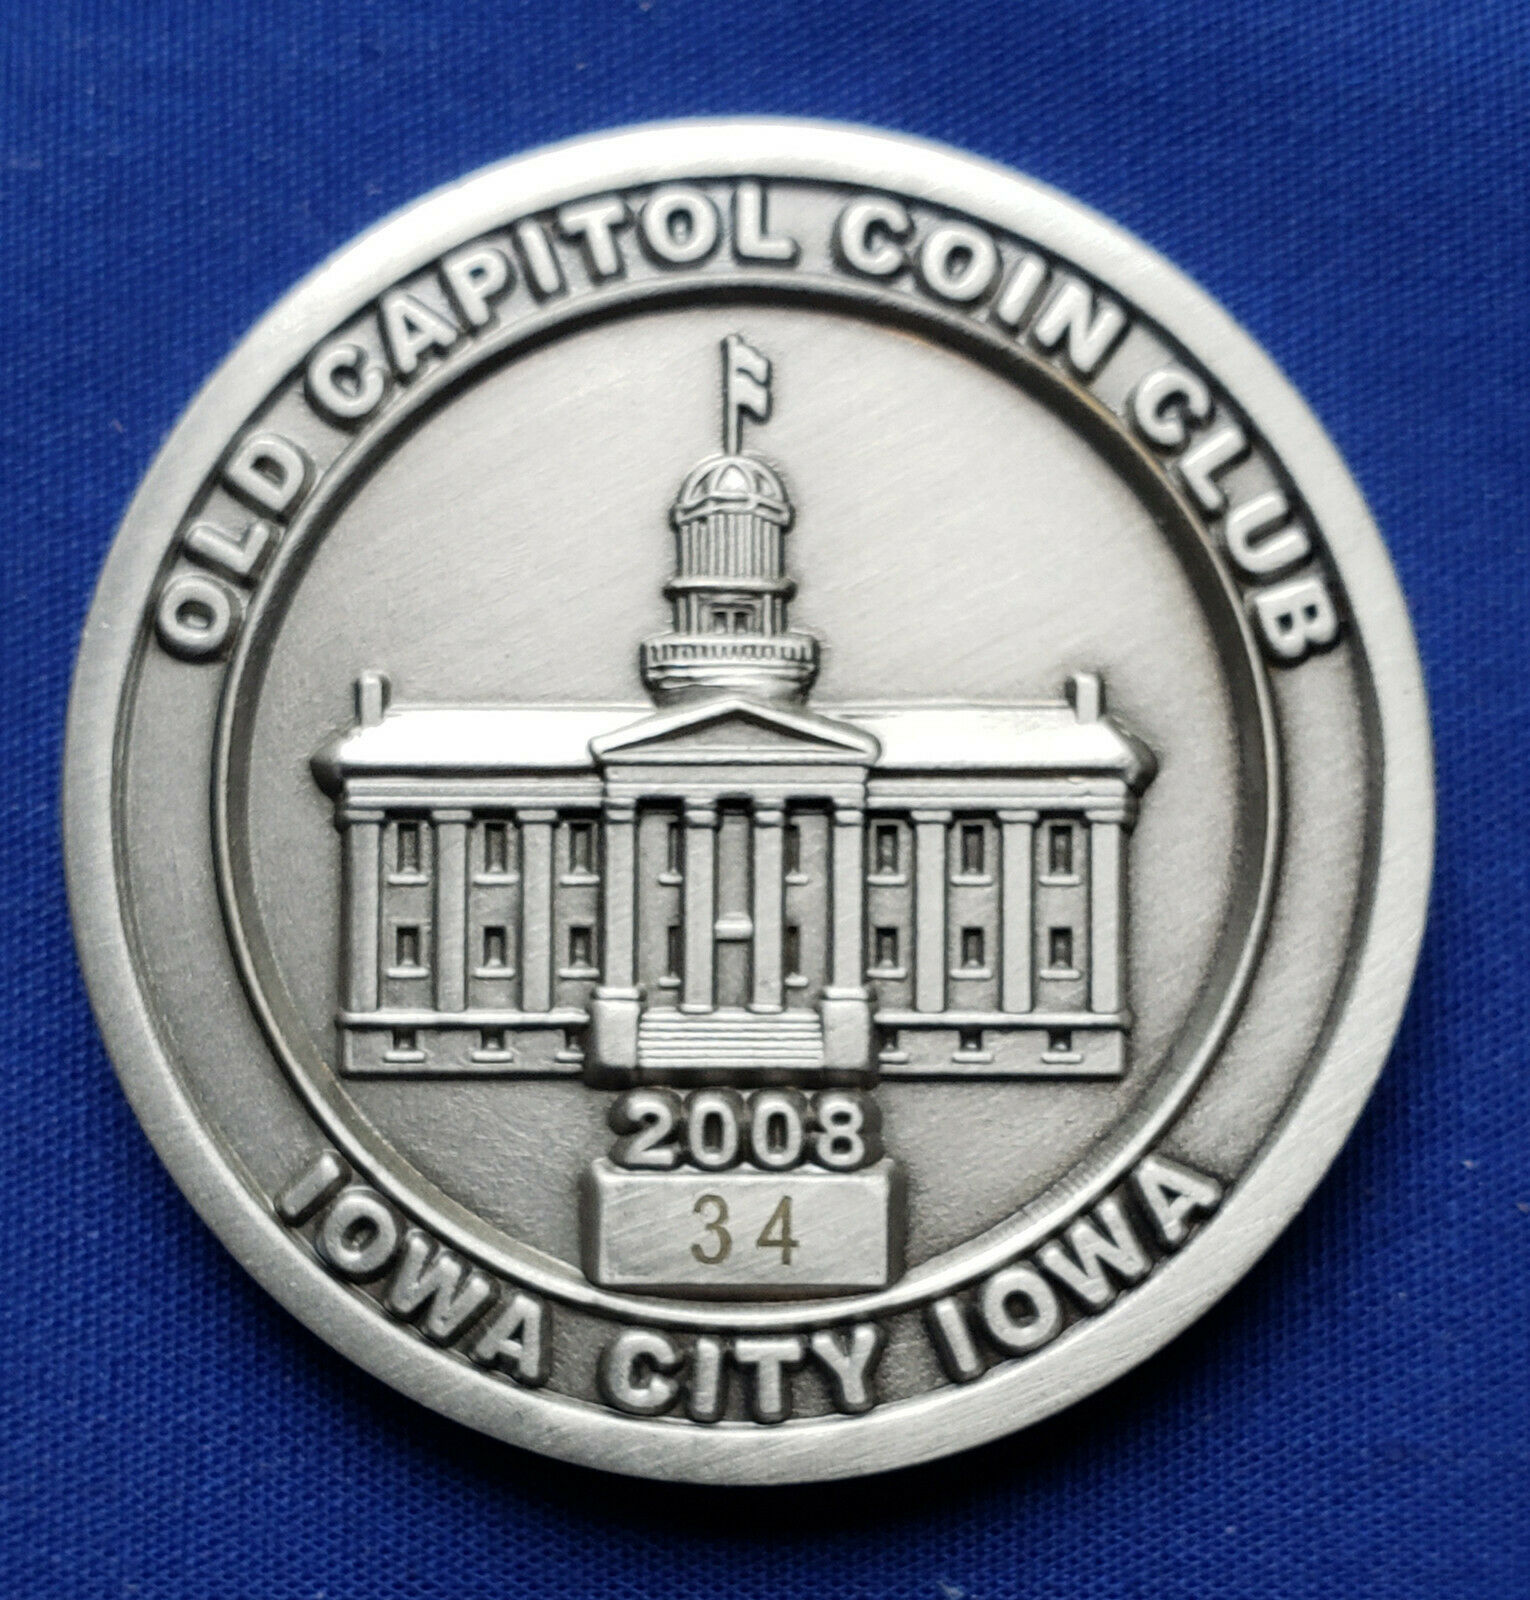 2008OldCapitolCoin